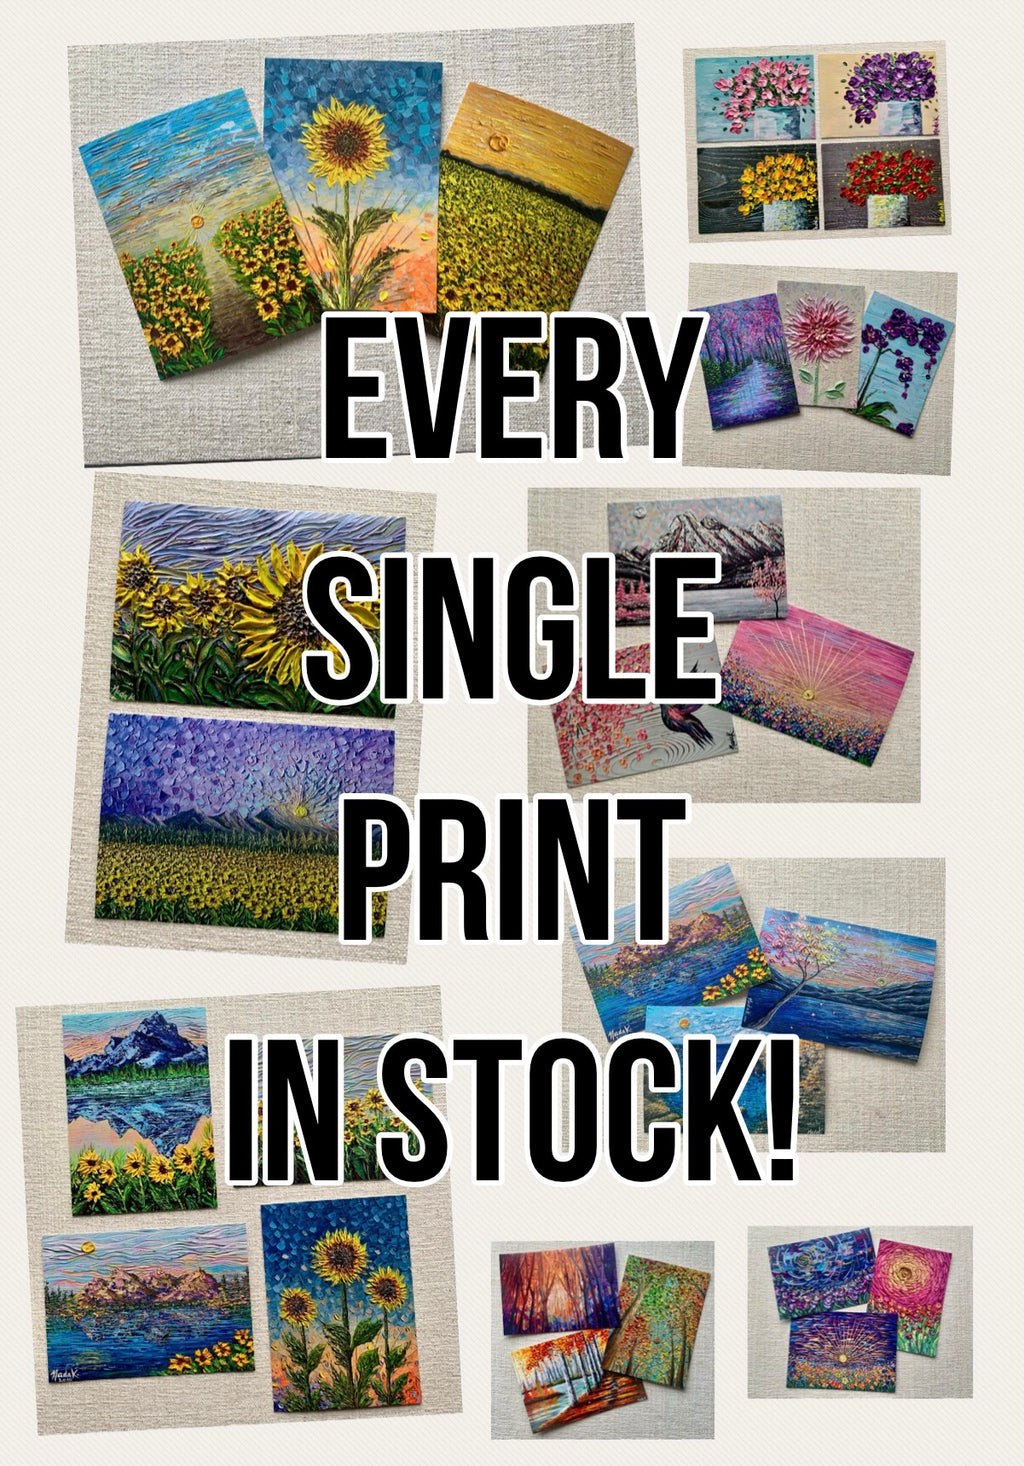 EVERY SINGLE PRINT IN STOCK!